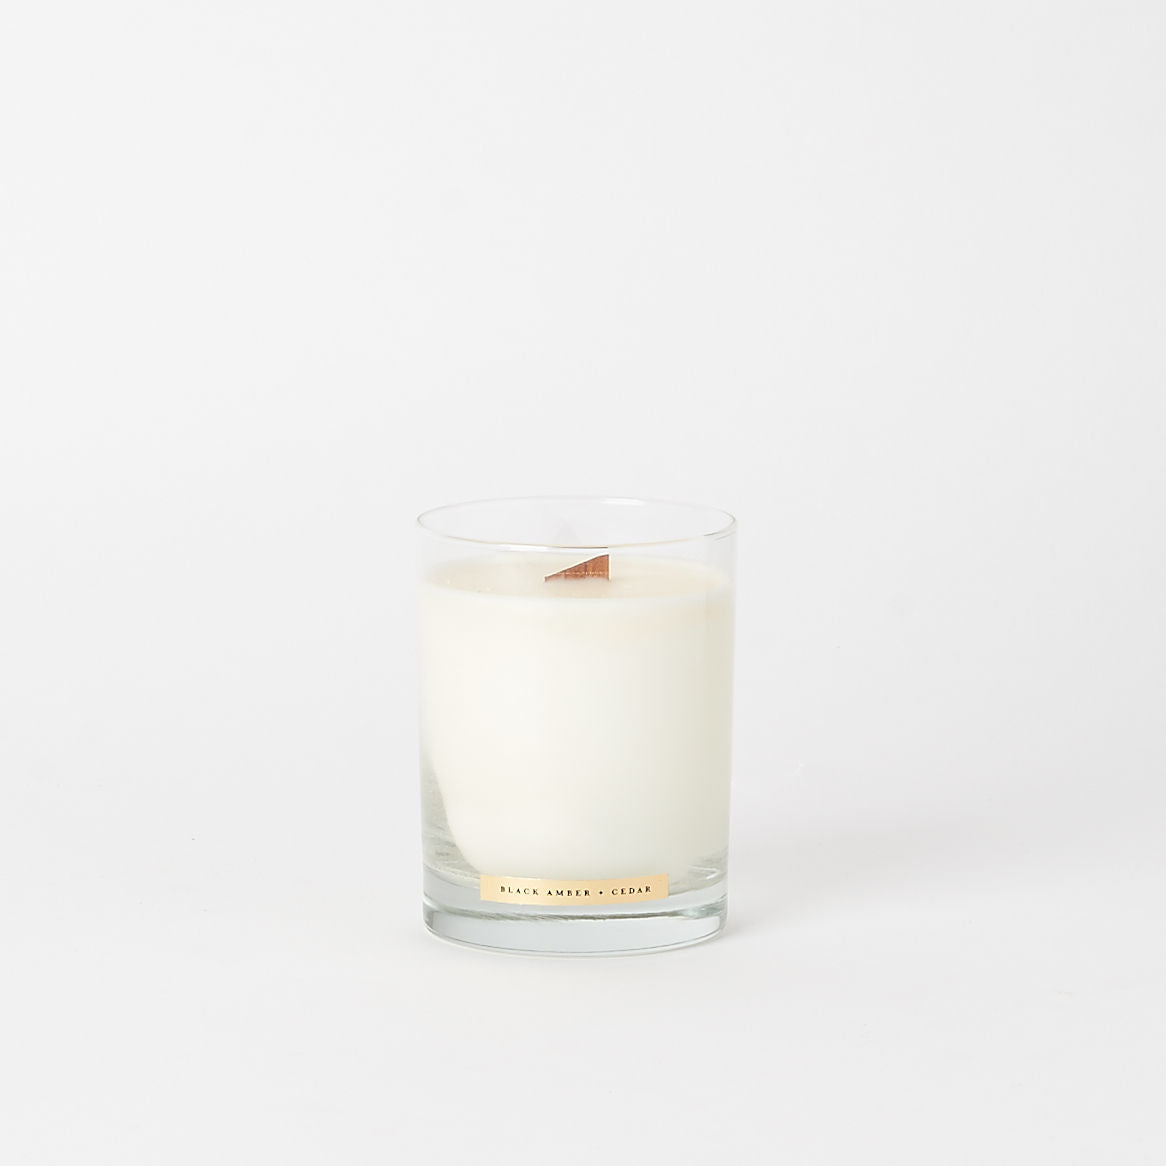 Black Amber + Cedar Candle by Monokle Collection